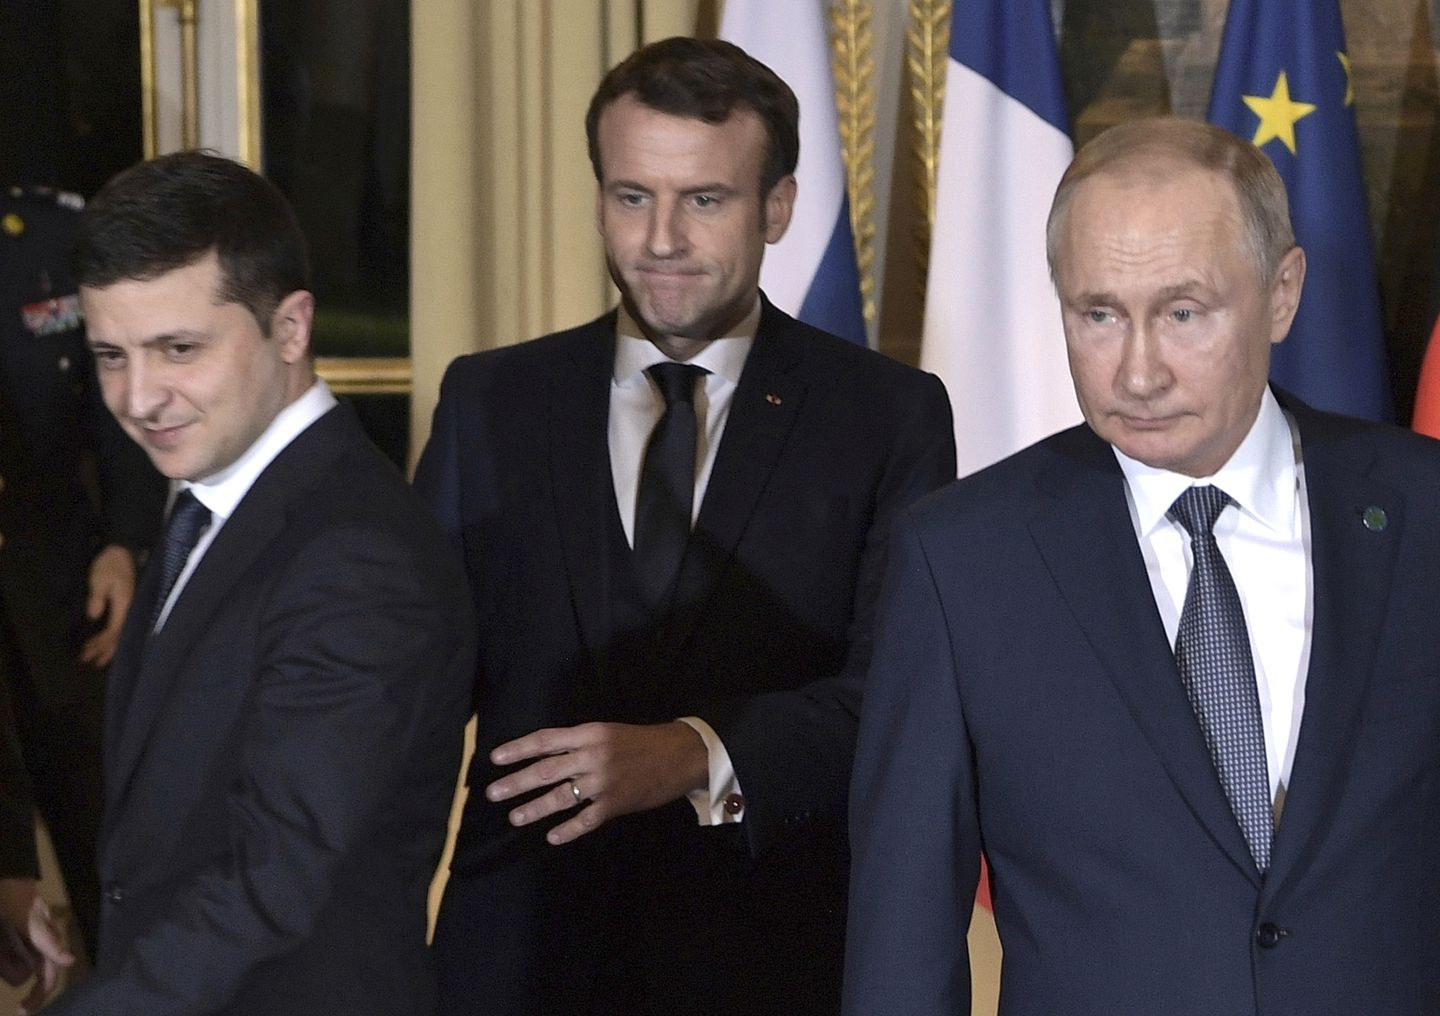 Ukrainian President Volodymyr Zelensky (left), French President Emmanuel Macron (center), and Russian President Vladimir Putin arrived Monday for a working session at the Elysee Palace in Paris.